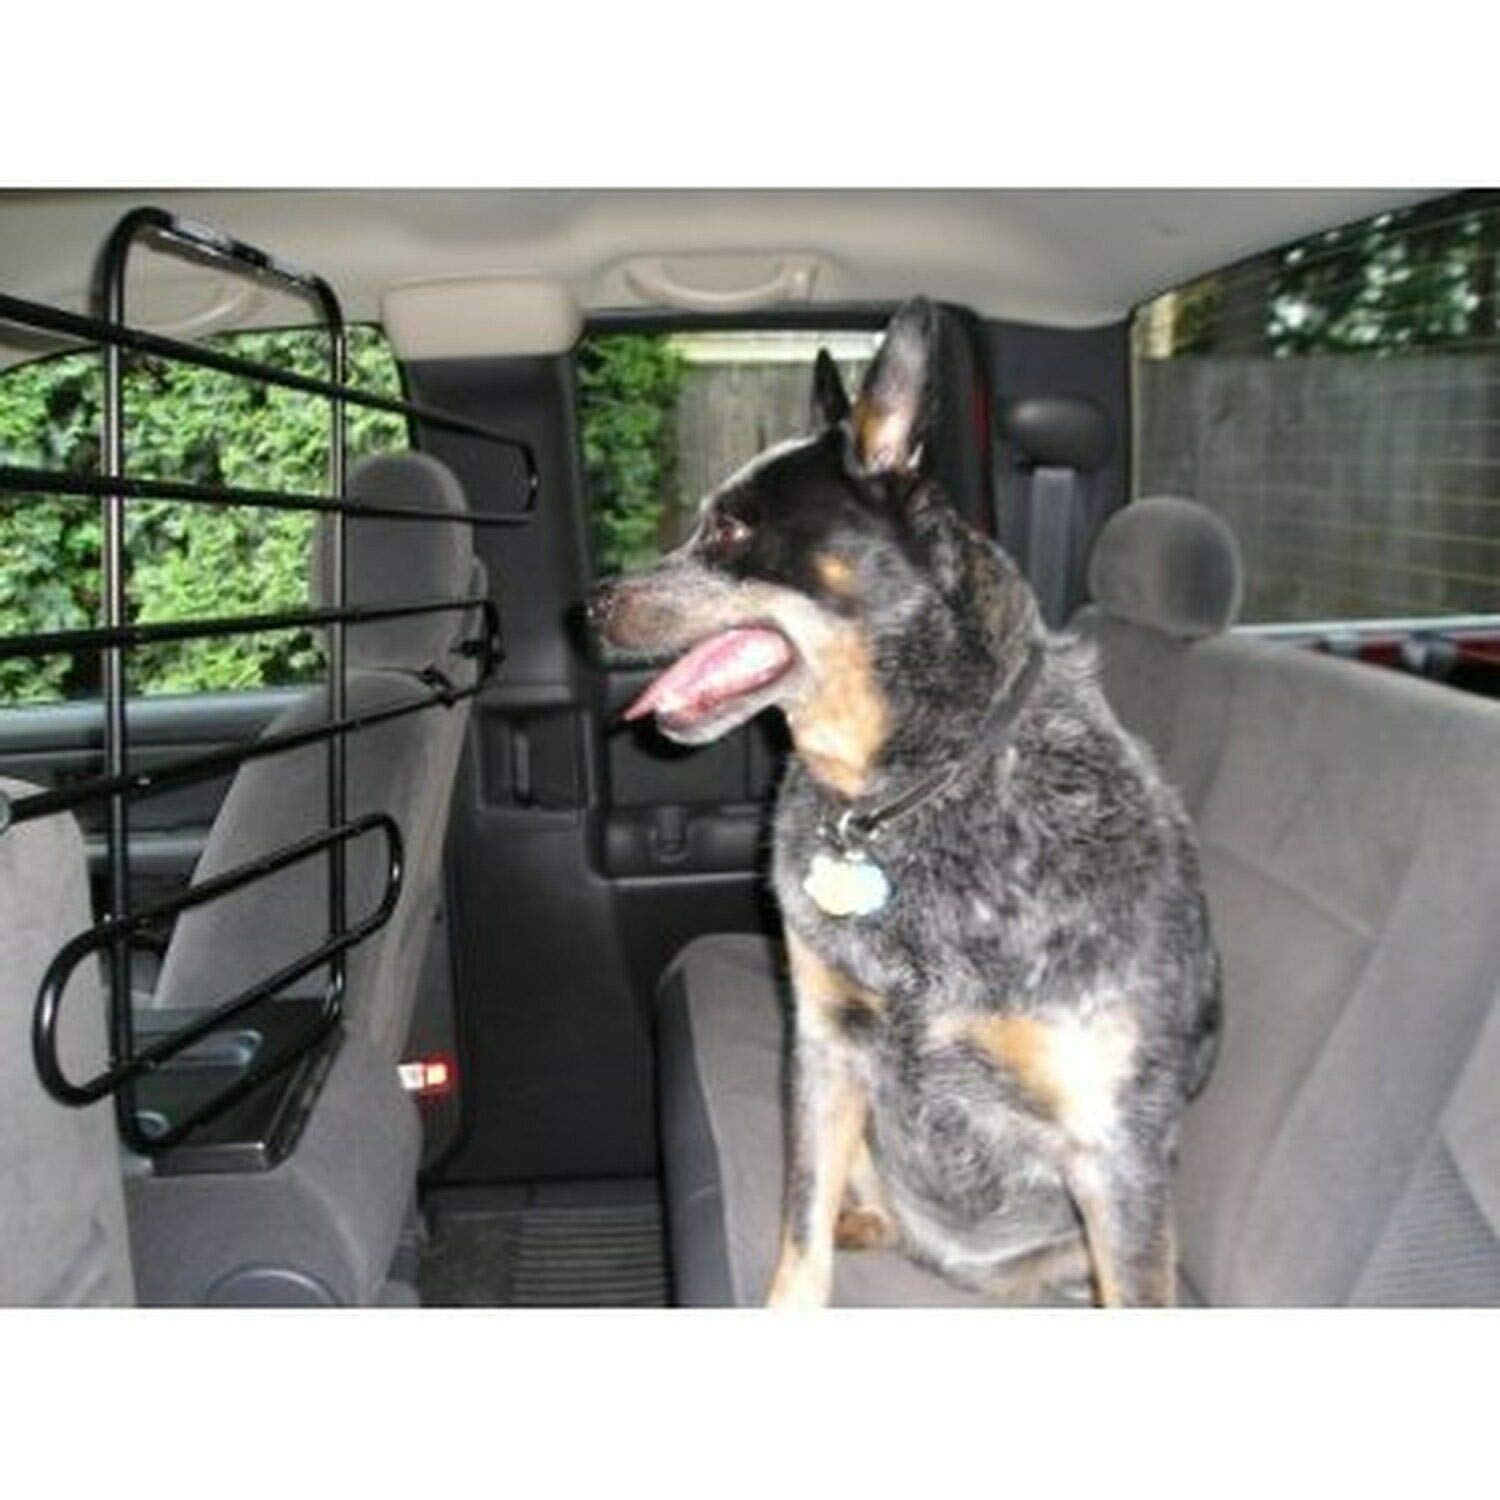 The Original Zookeeper Auto Car Pet Barrier Moves with Your Seats. Tilt. Slide. Recline. All with Ease. by The ZooKeeper